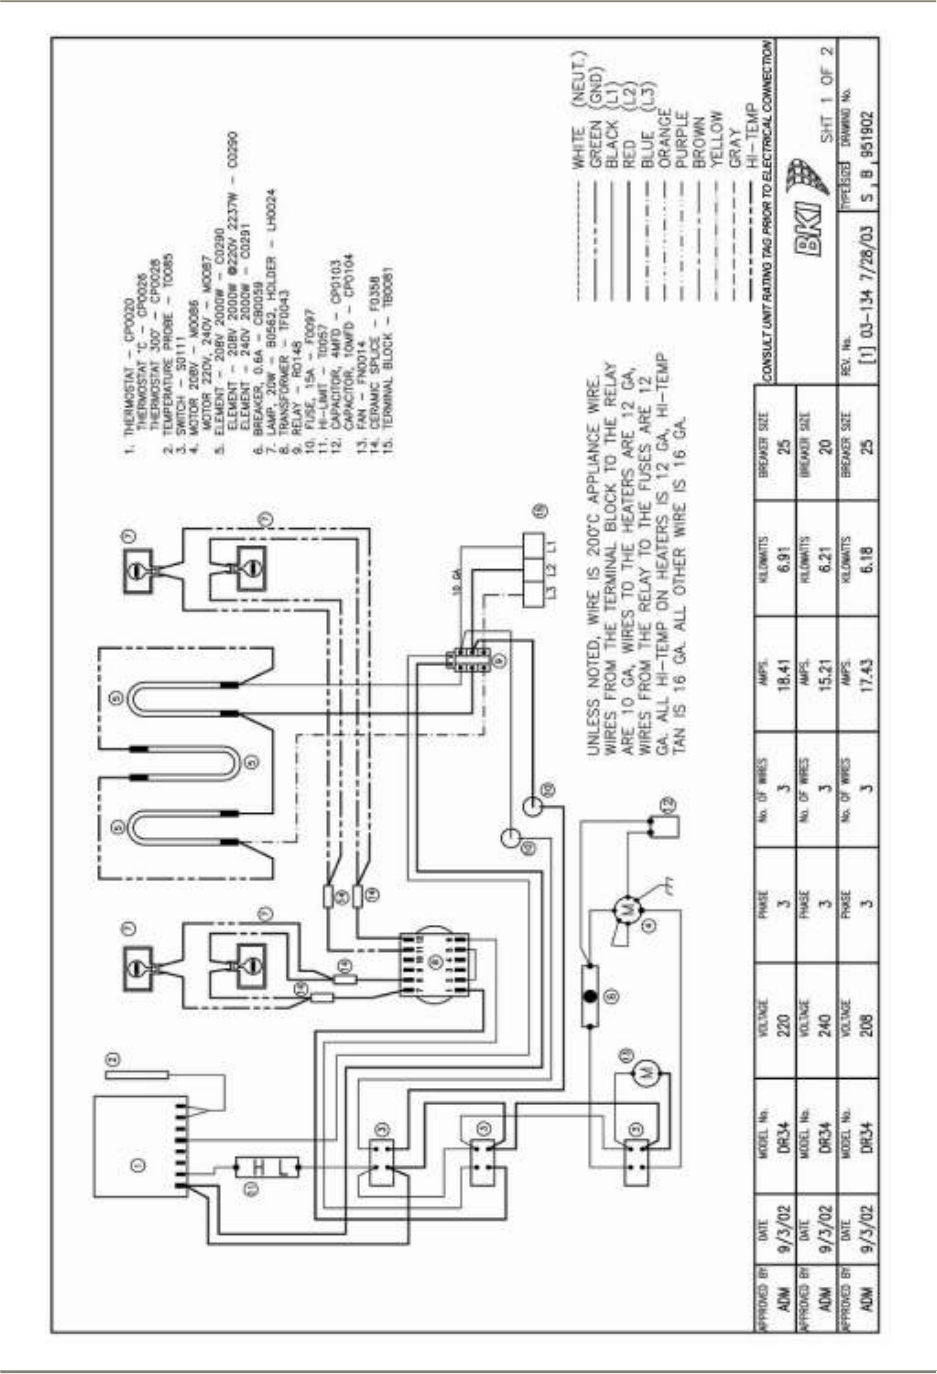 Dr34sm Double Revolving Oven Dr 34 Bki Dr34 Spm Element Wire Diagram For One Wiring Diagrams